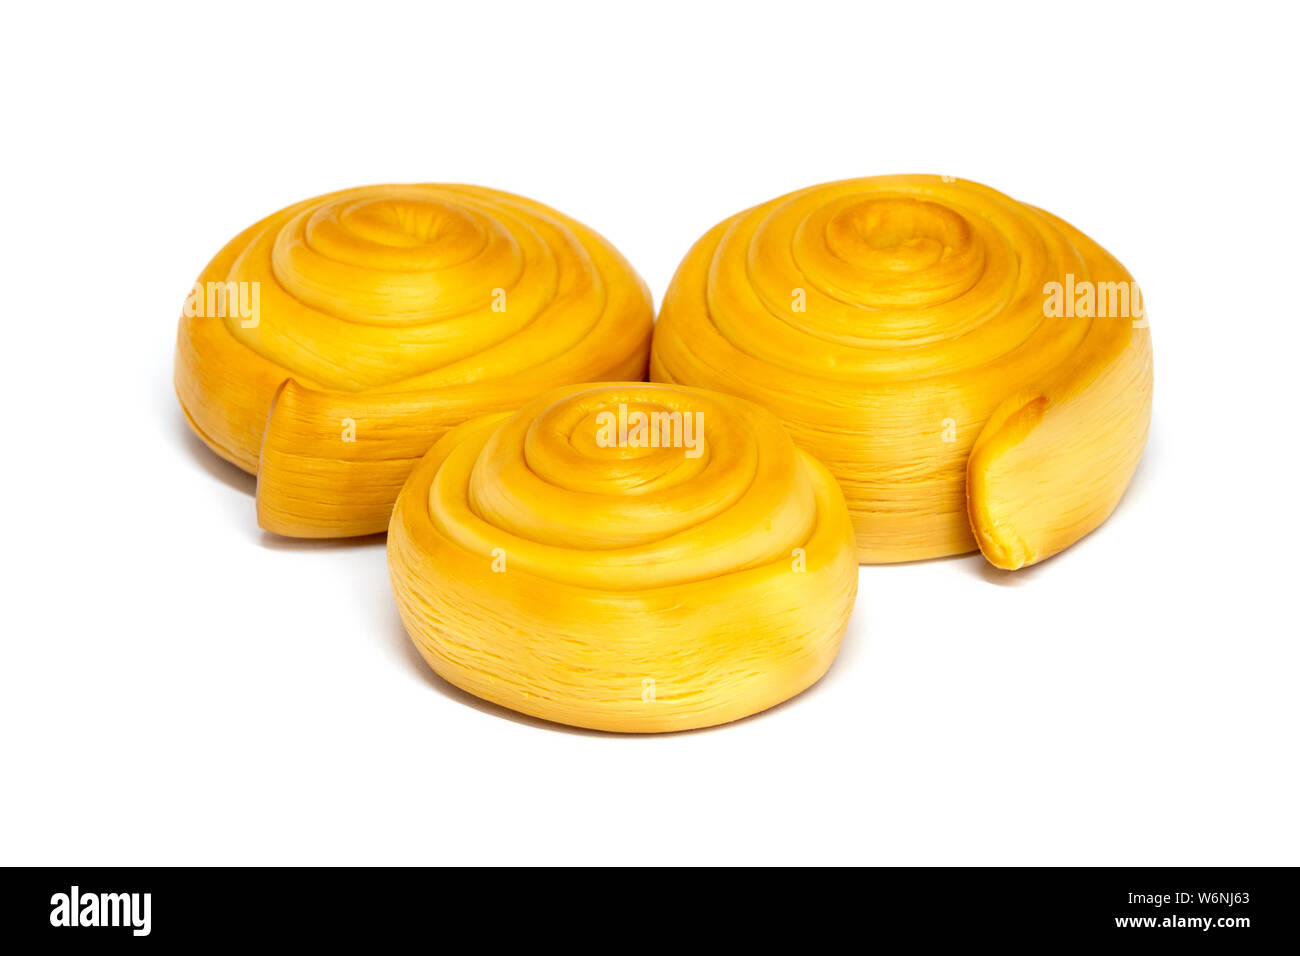 Parenica, a traditional Slovak smoked cheese, on a white background Stock Photo